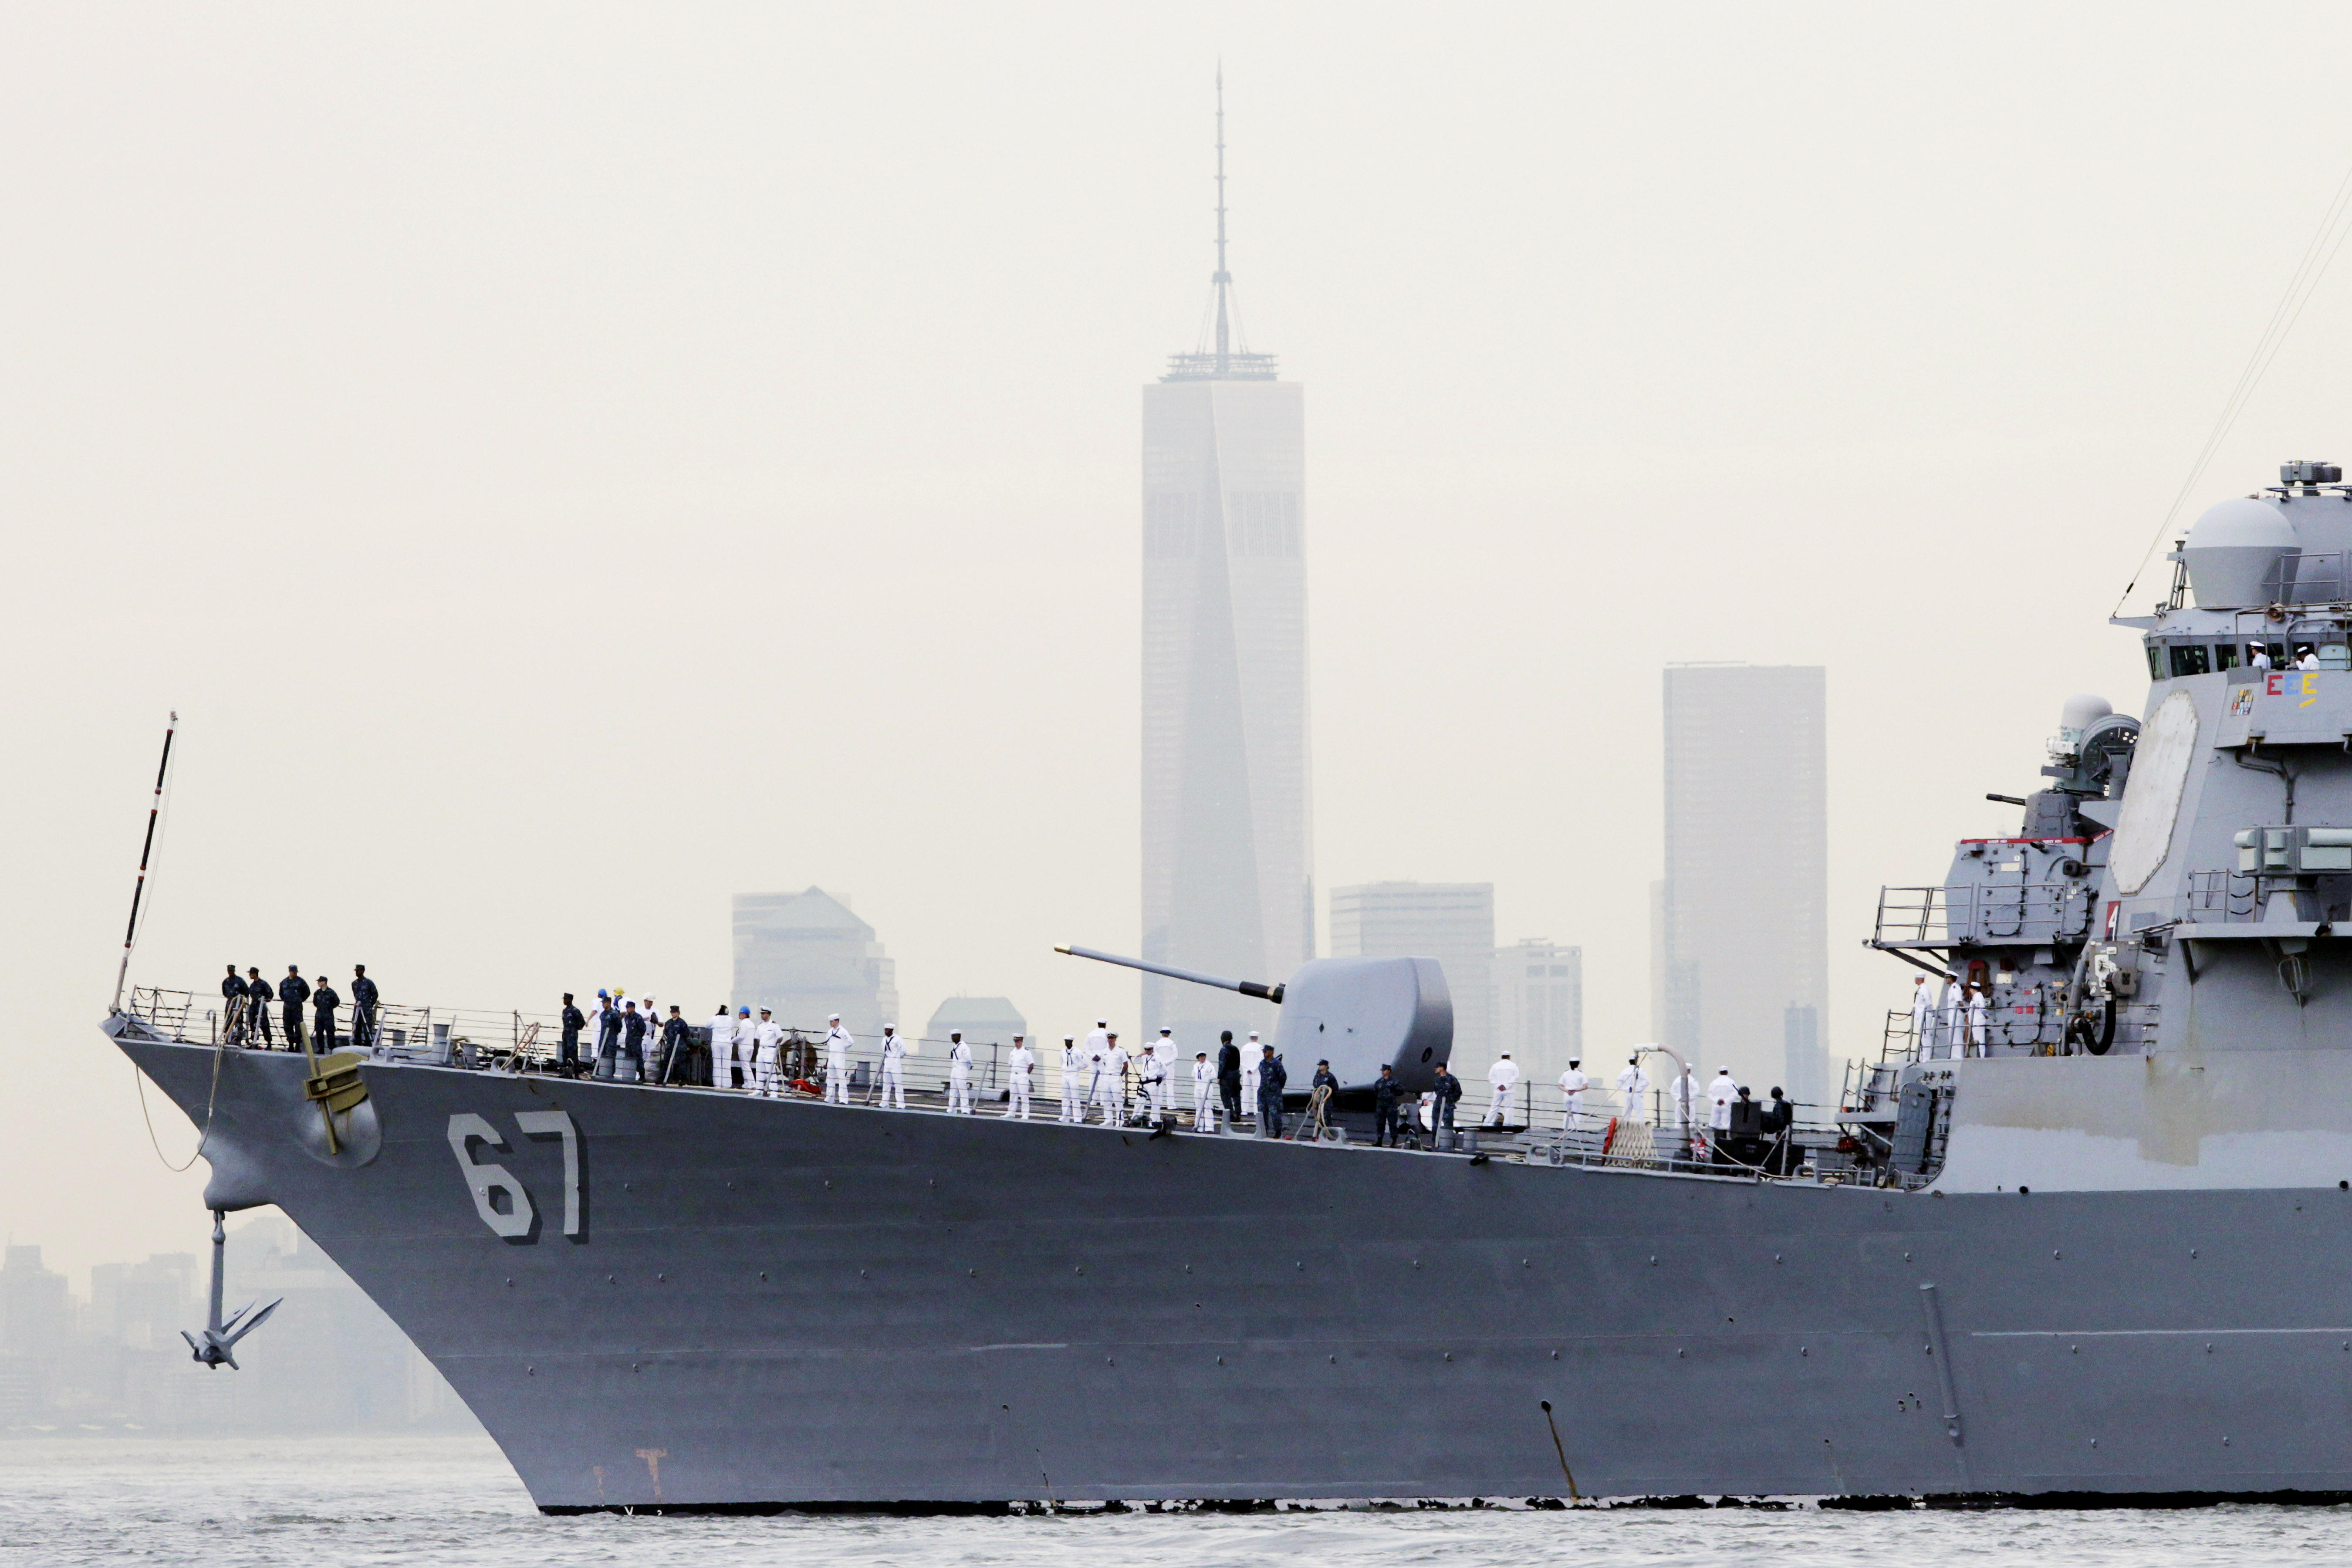 Iran Warship In Strait Of Hormuz In Quot Unsafe And